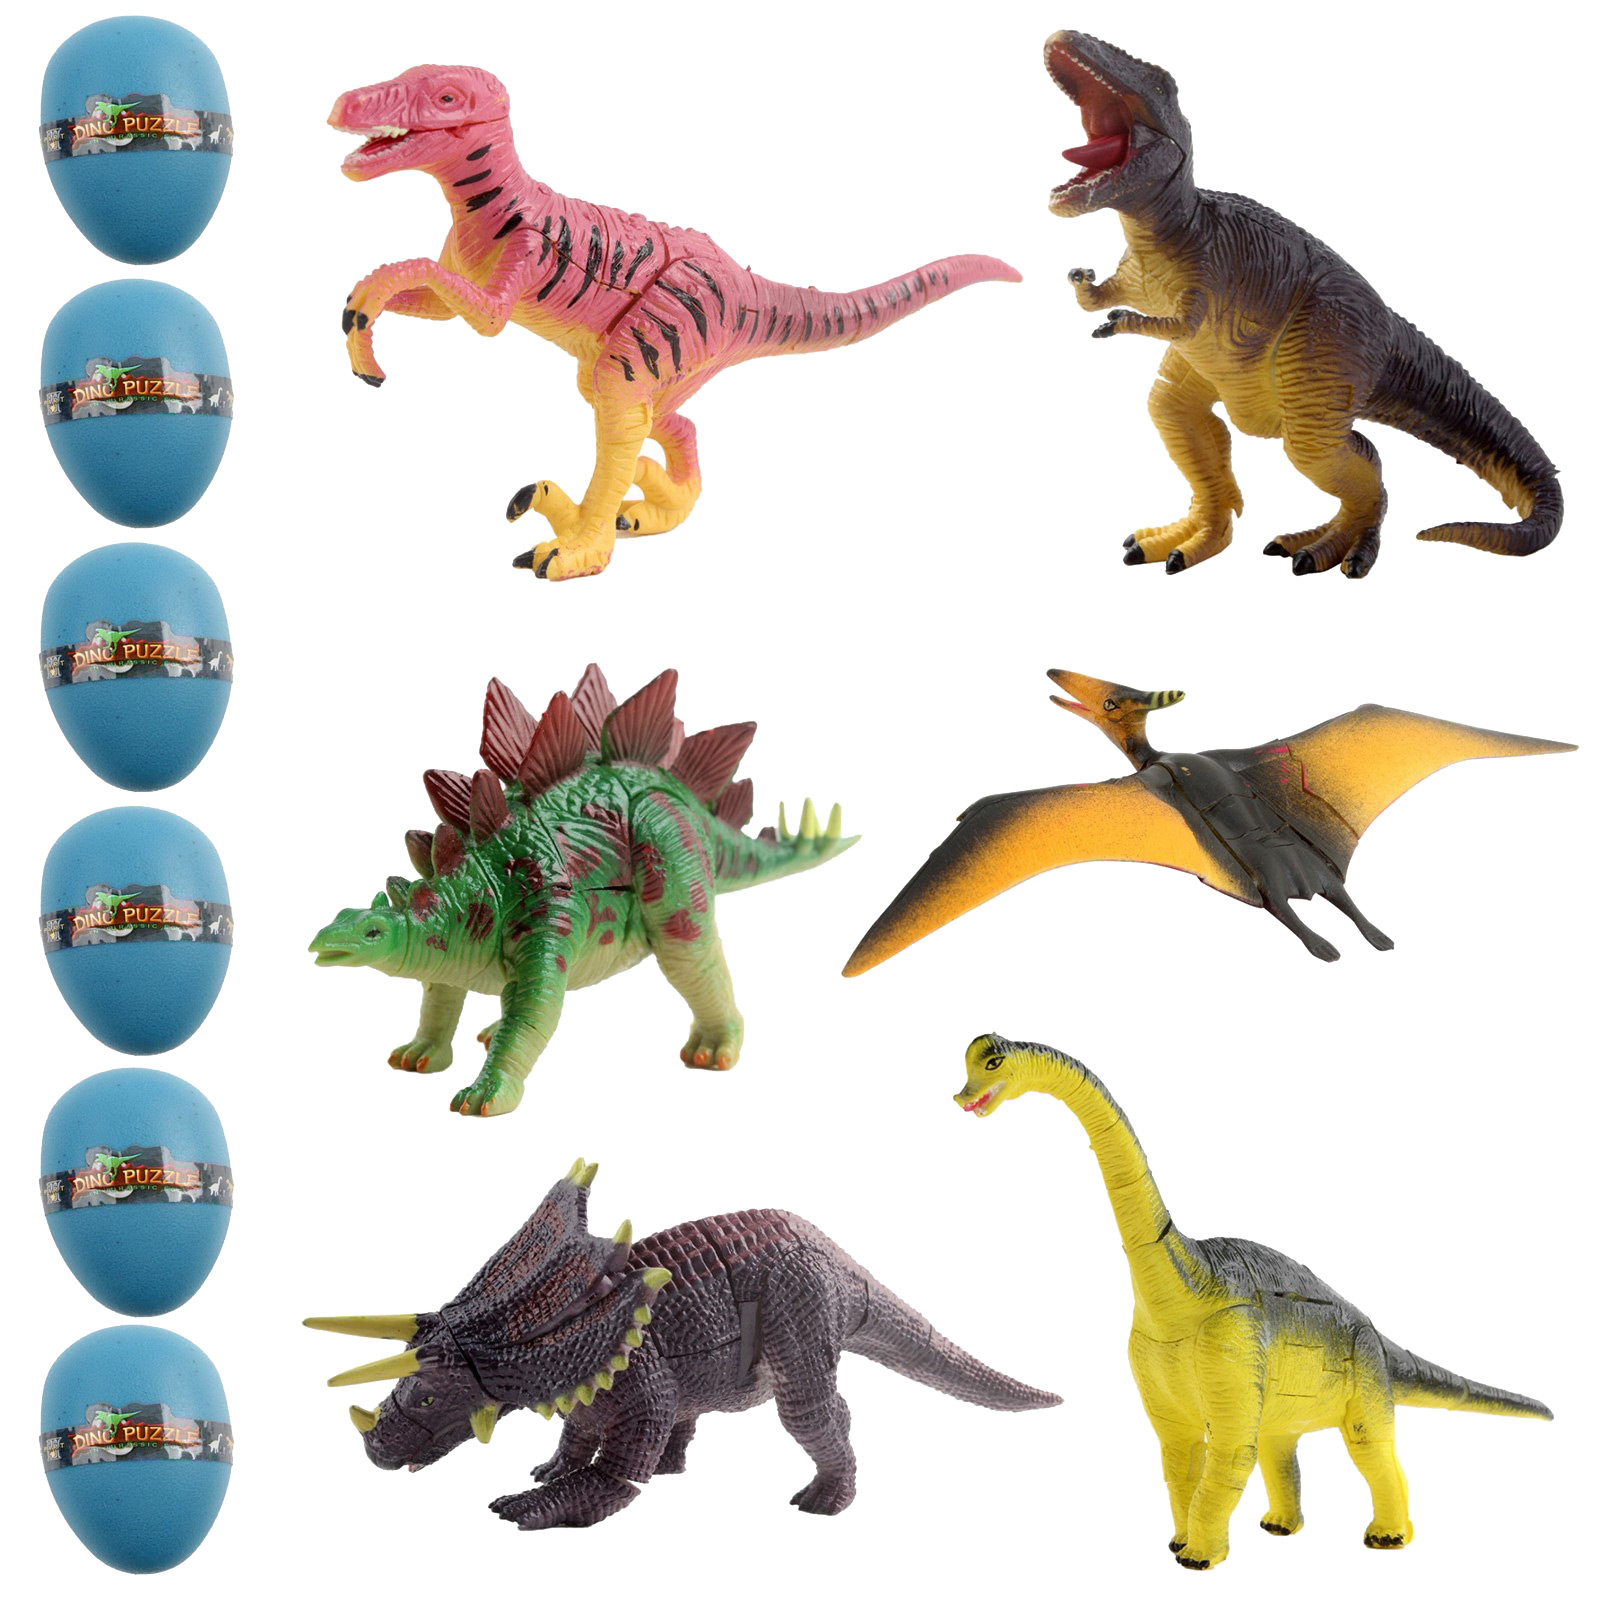 Dinosaur Egg Set With 6 Unique Species Kids Archaeology 3D Puzzle Take Apart Playset Discover Fossil Animals Science STEM Educational Dig Up Easter Party Toys Great Gift For Children Boys Girls